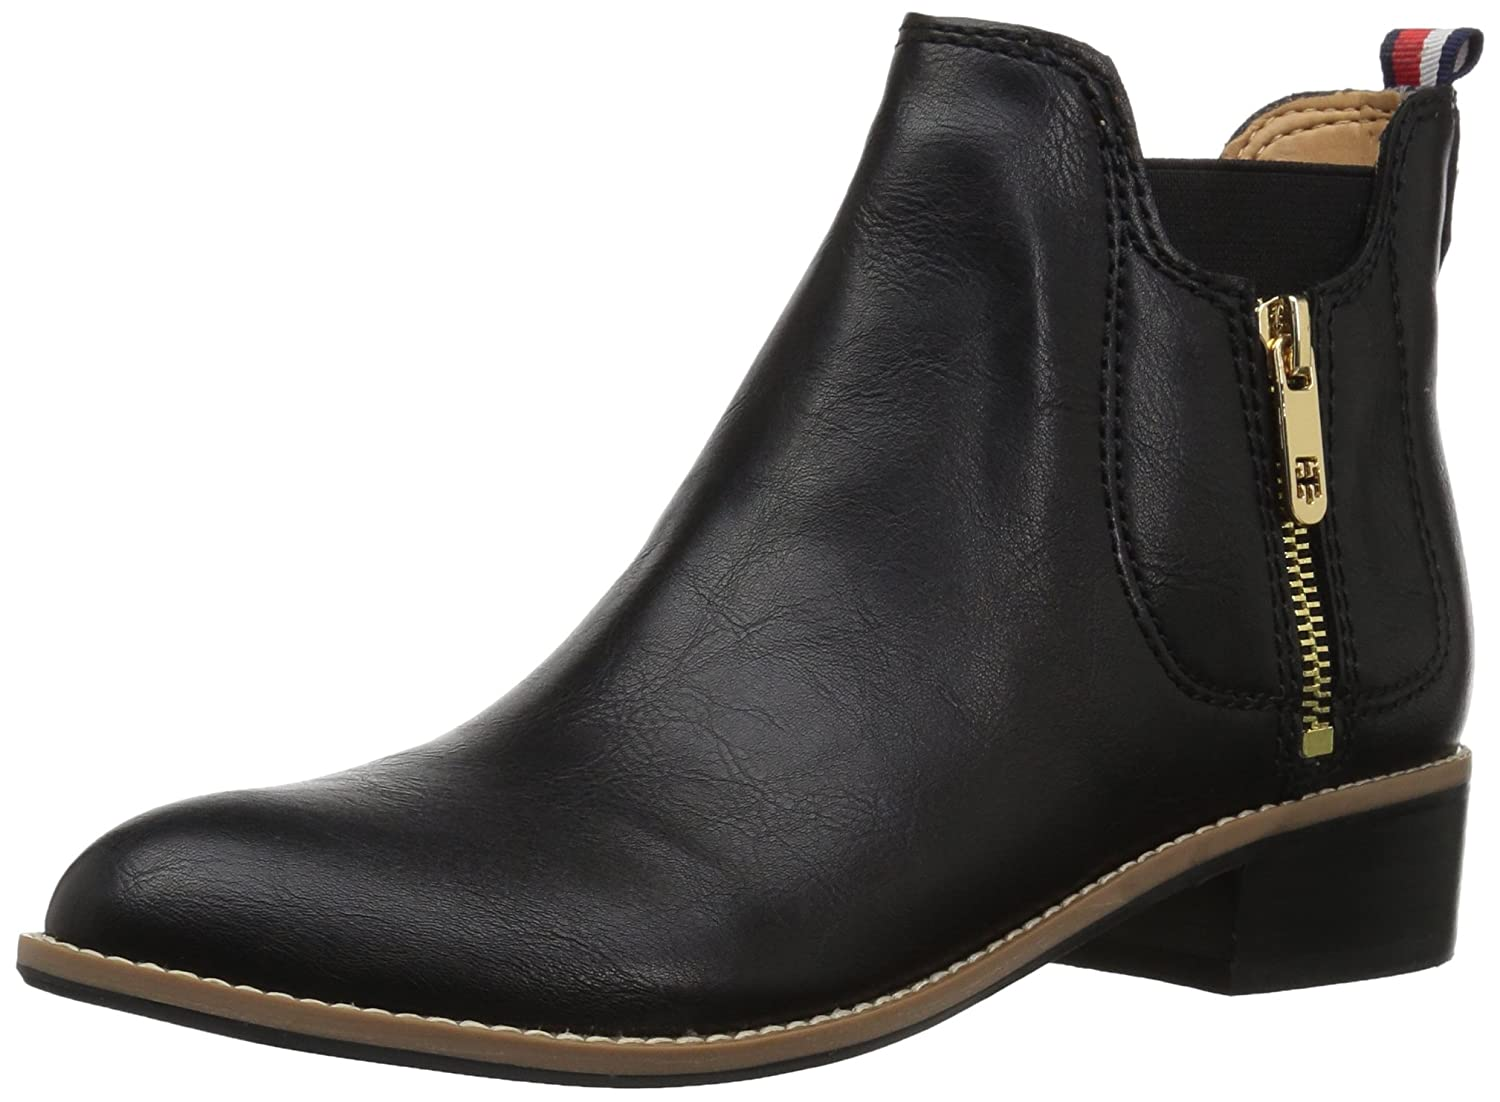 Tommy Hilfiger Women's Toscana Ankle Boot B06XVJD1H3 11 B(M) US|Black